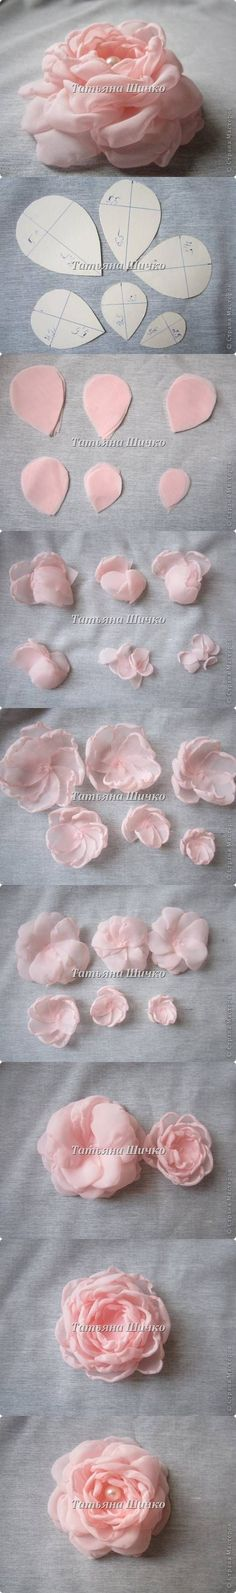 DIY Nylon Flower DIY Projects | UsefulDIY.com Follow Us on Facebook ==> http://www.facebook.com/UsefulDiy